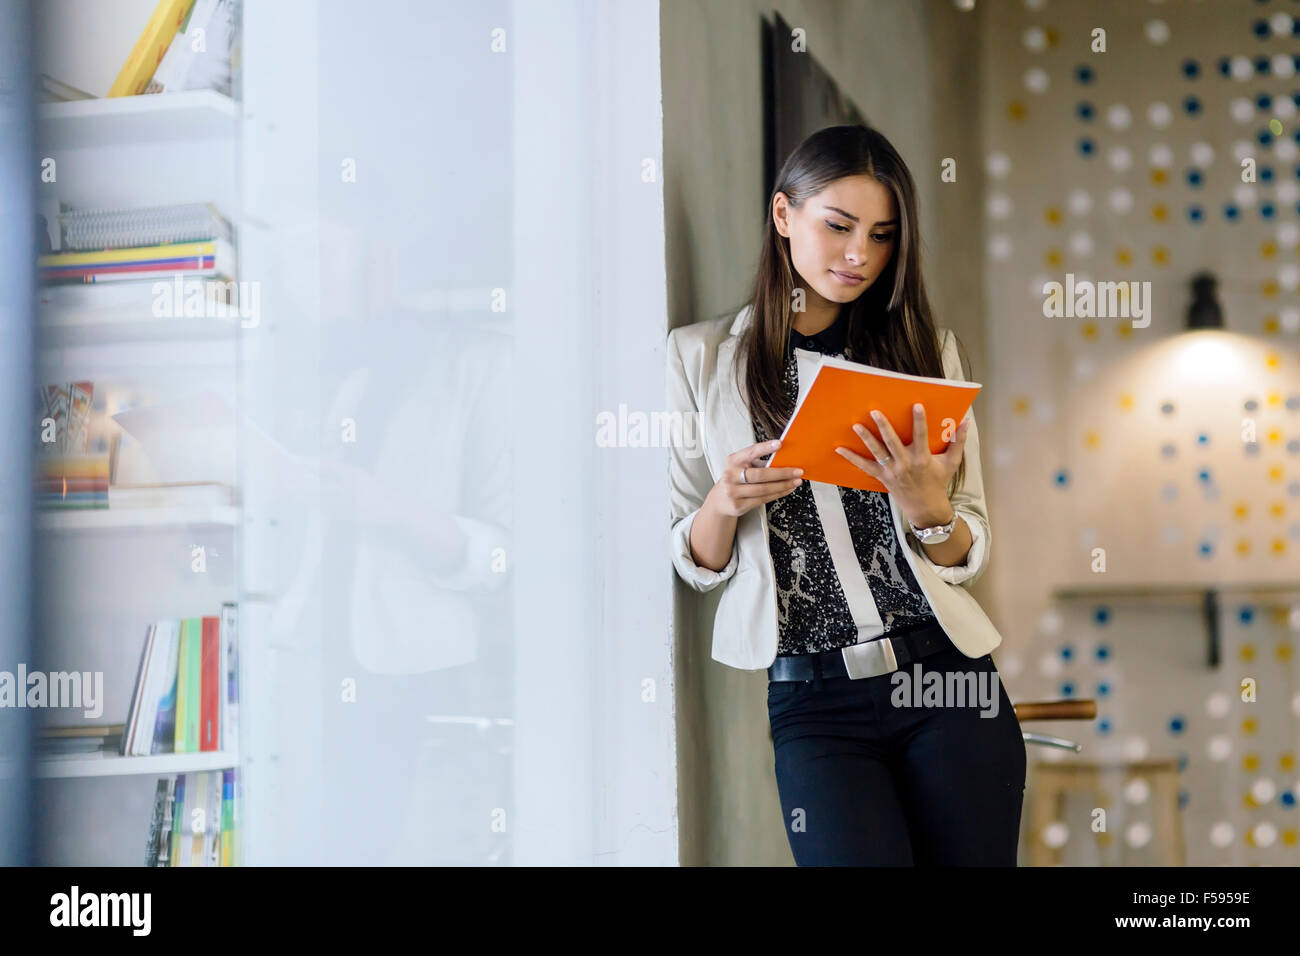 Businesswoman holding a file in office - Stock Image